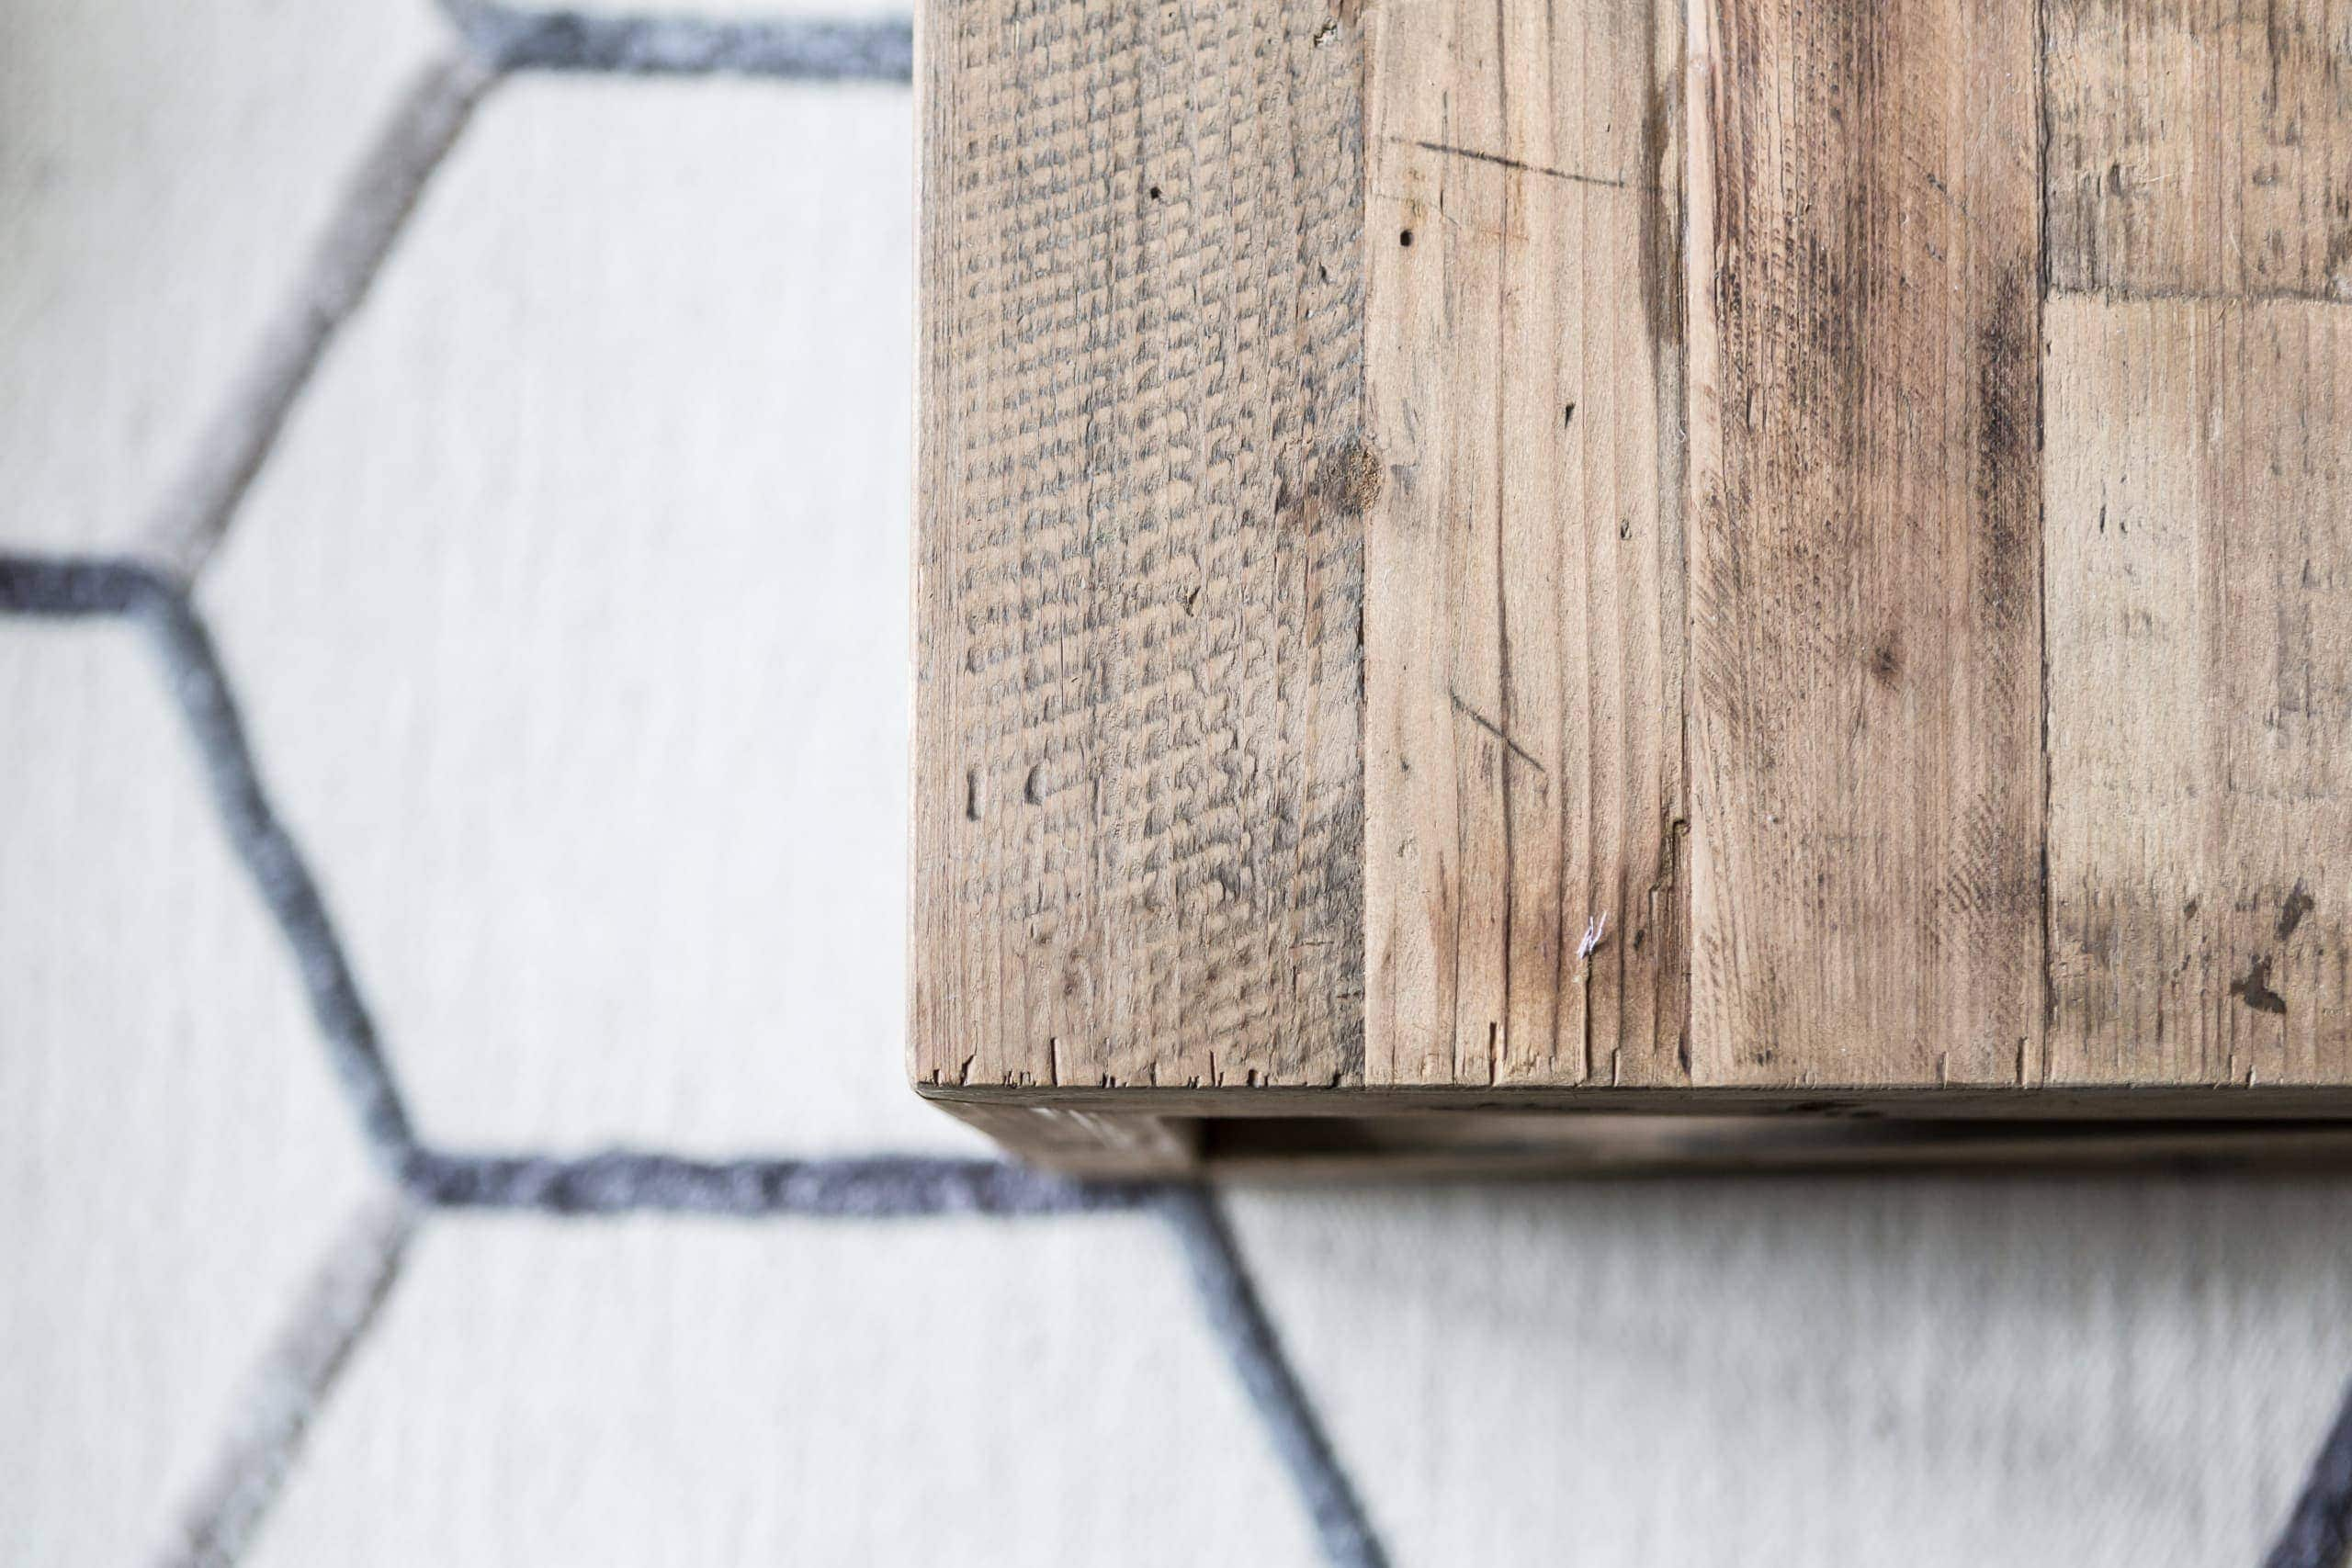 Wooden table made out of planks